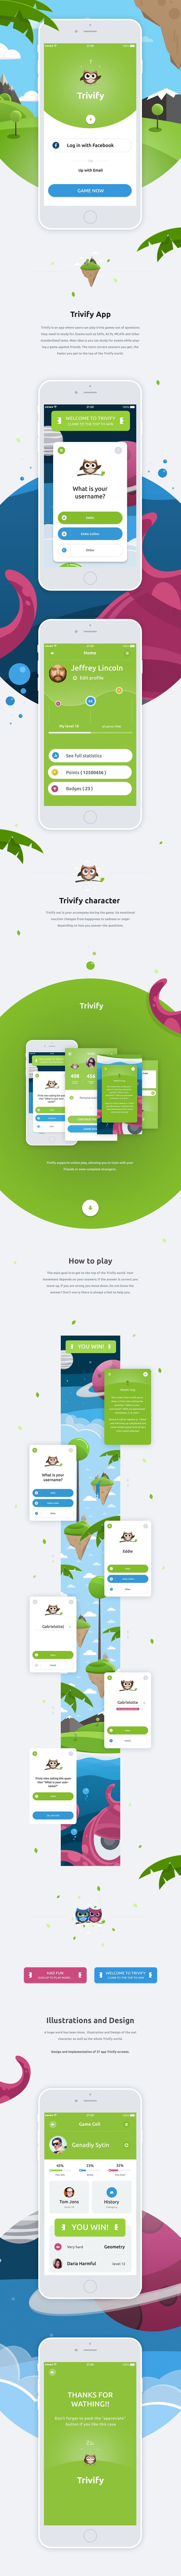 Trivify mobile app on Behance #UI #UX #UserInterface #App #Design